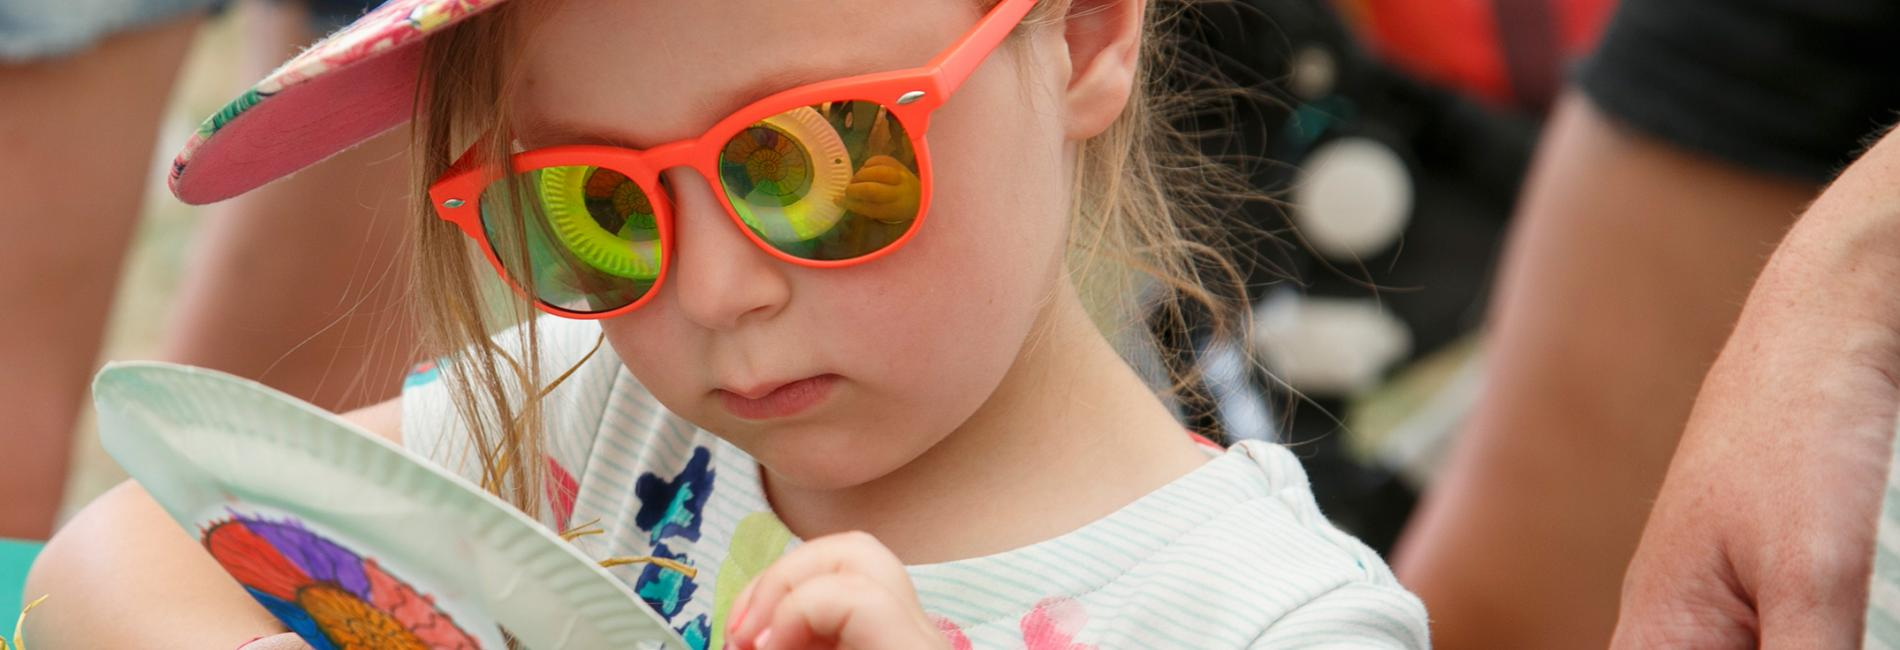 girl with ammonite pattern reflecting in her sunglasses